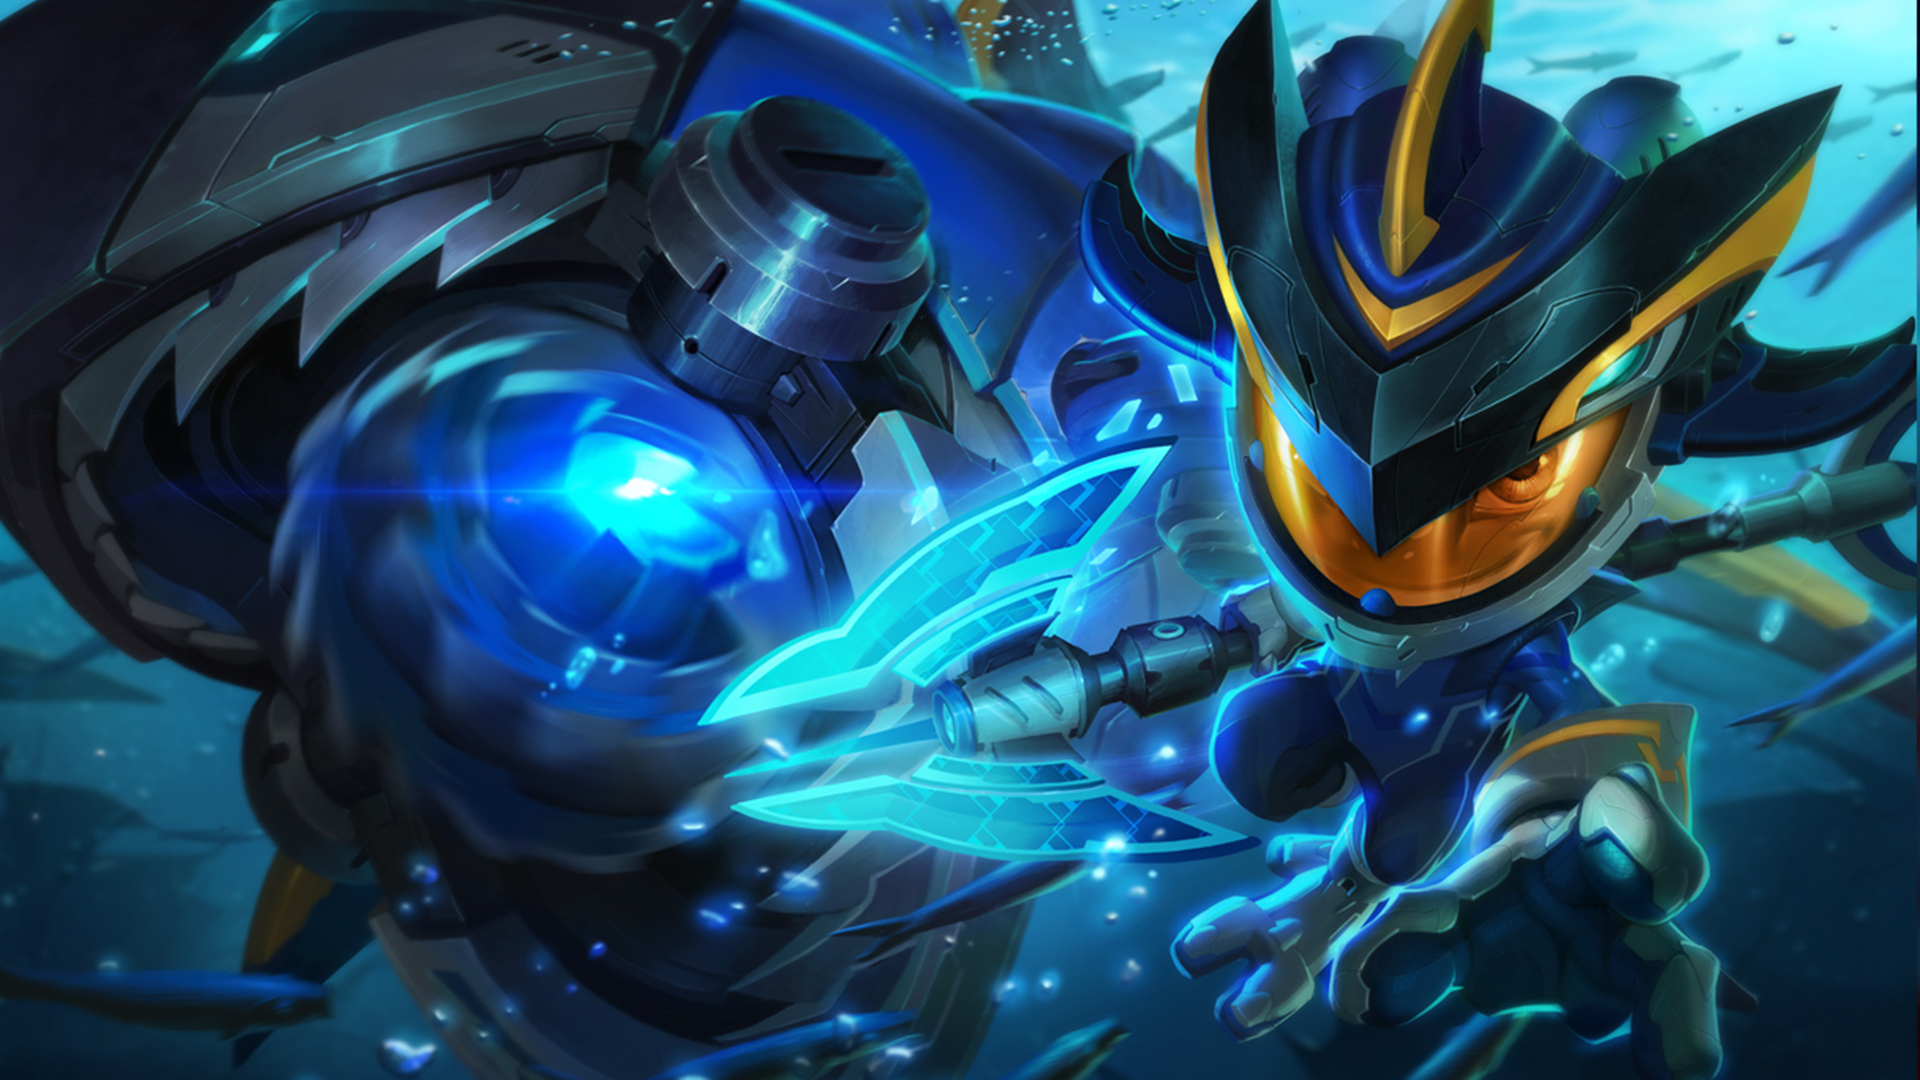 Super Galaxy Fizz League Of Legends Wallpaper HD 1920x1080